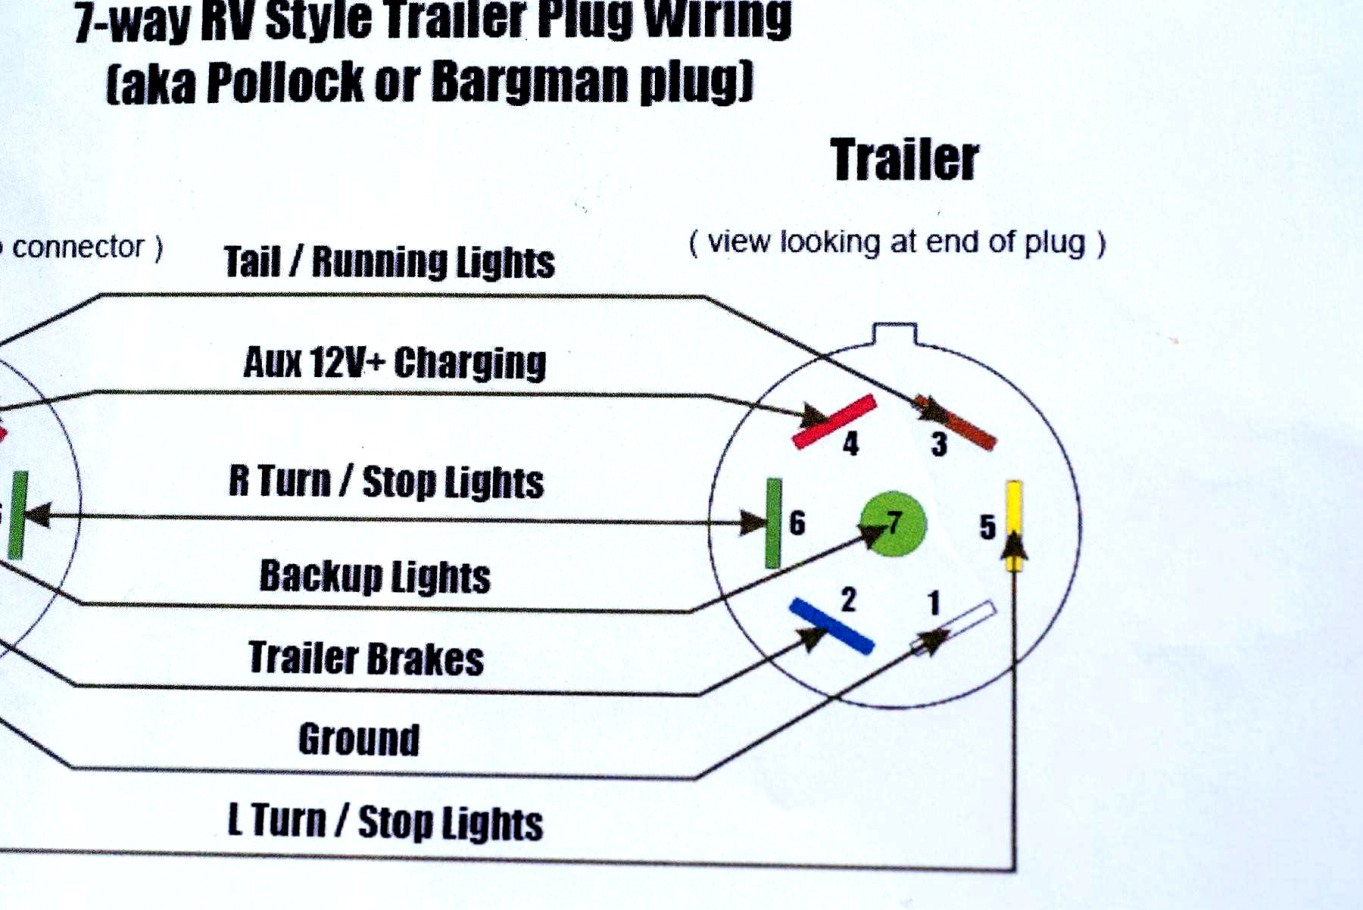 Hitch Wiring Diagram - Today Wiring Diagram - Trailer Hitch Wiring Diagram